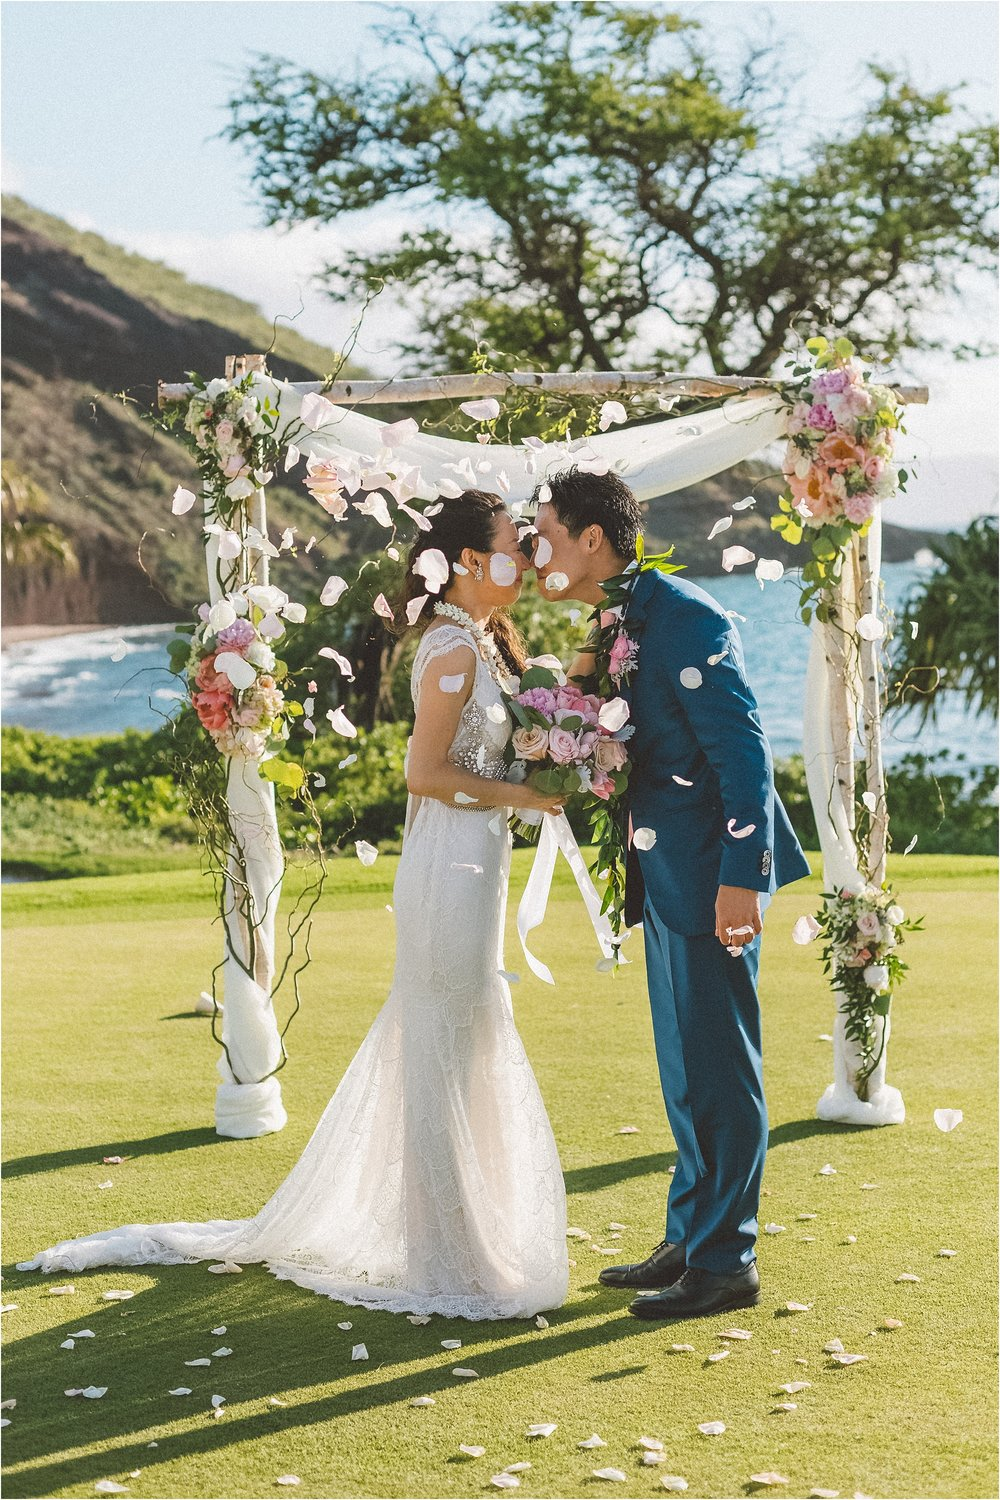 angie-diaz-photography-maui-hawaii-destination-wedding-makena-golf-beach-club_0056.jpg